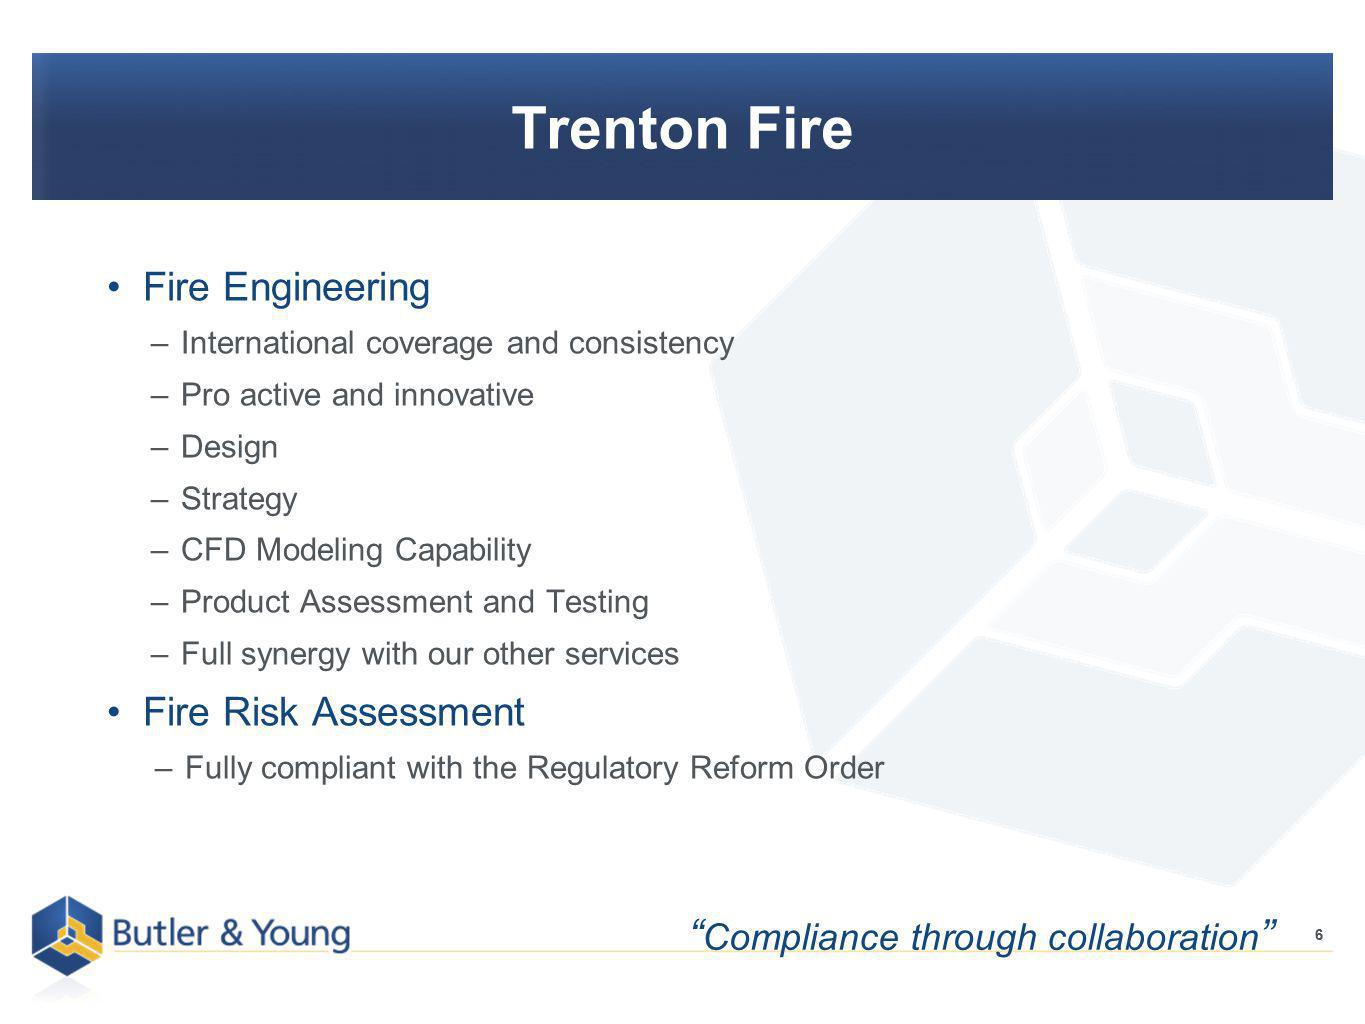 6 Trenton Fire Fire Engineering –International coverage and consistency –Pro active and innovative –Design –Strategy –CFD Modeling Capability –Product Assessment and Testing –Full synergy with our other services Fire Risk Assessment –Fully compliant with the Regulatory Reform Order 6 Compliance through collaboration